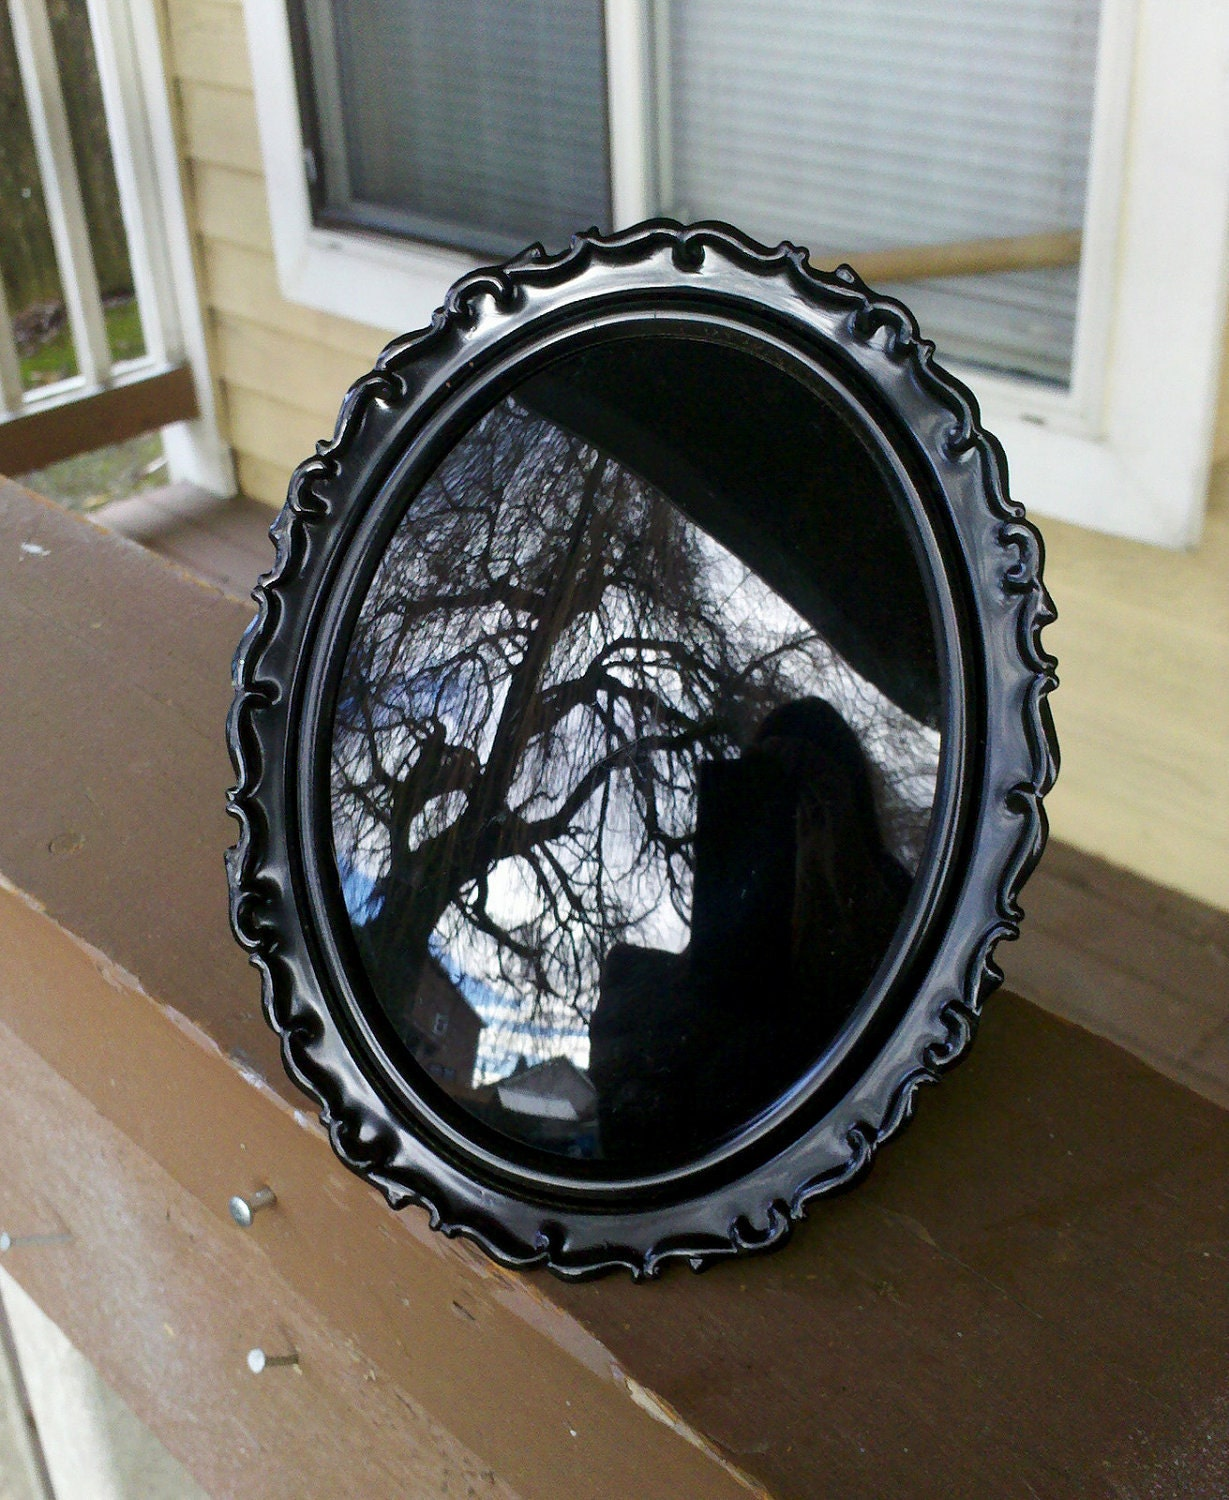 Black Scrying Mirror In Antique Easel Frame With Convex Glass